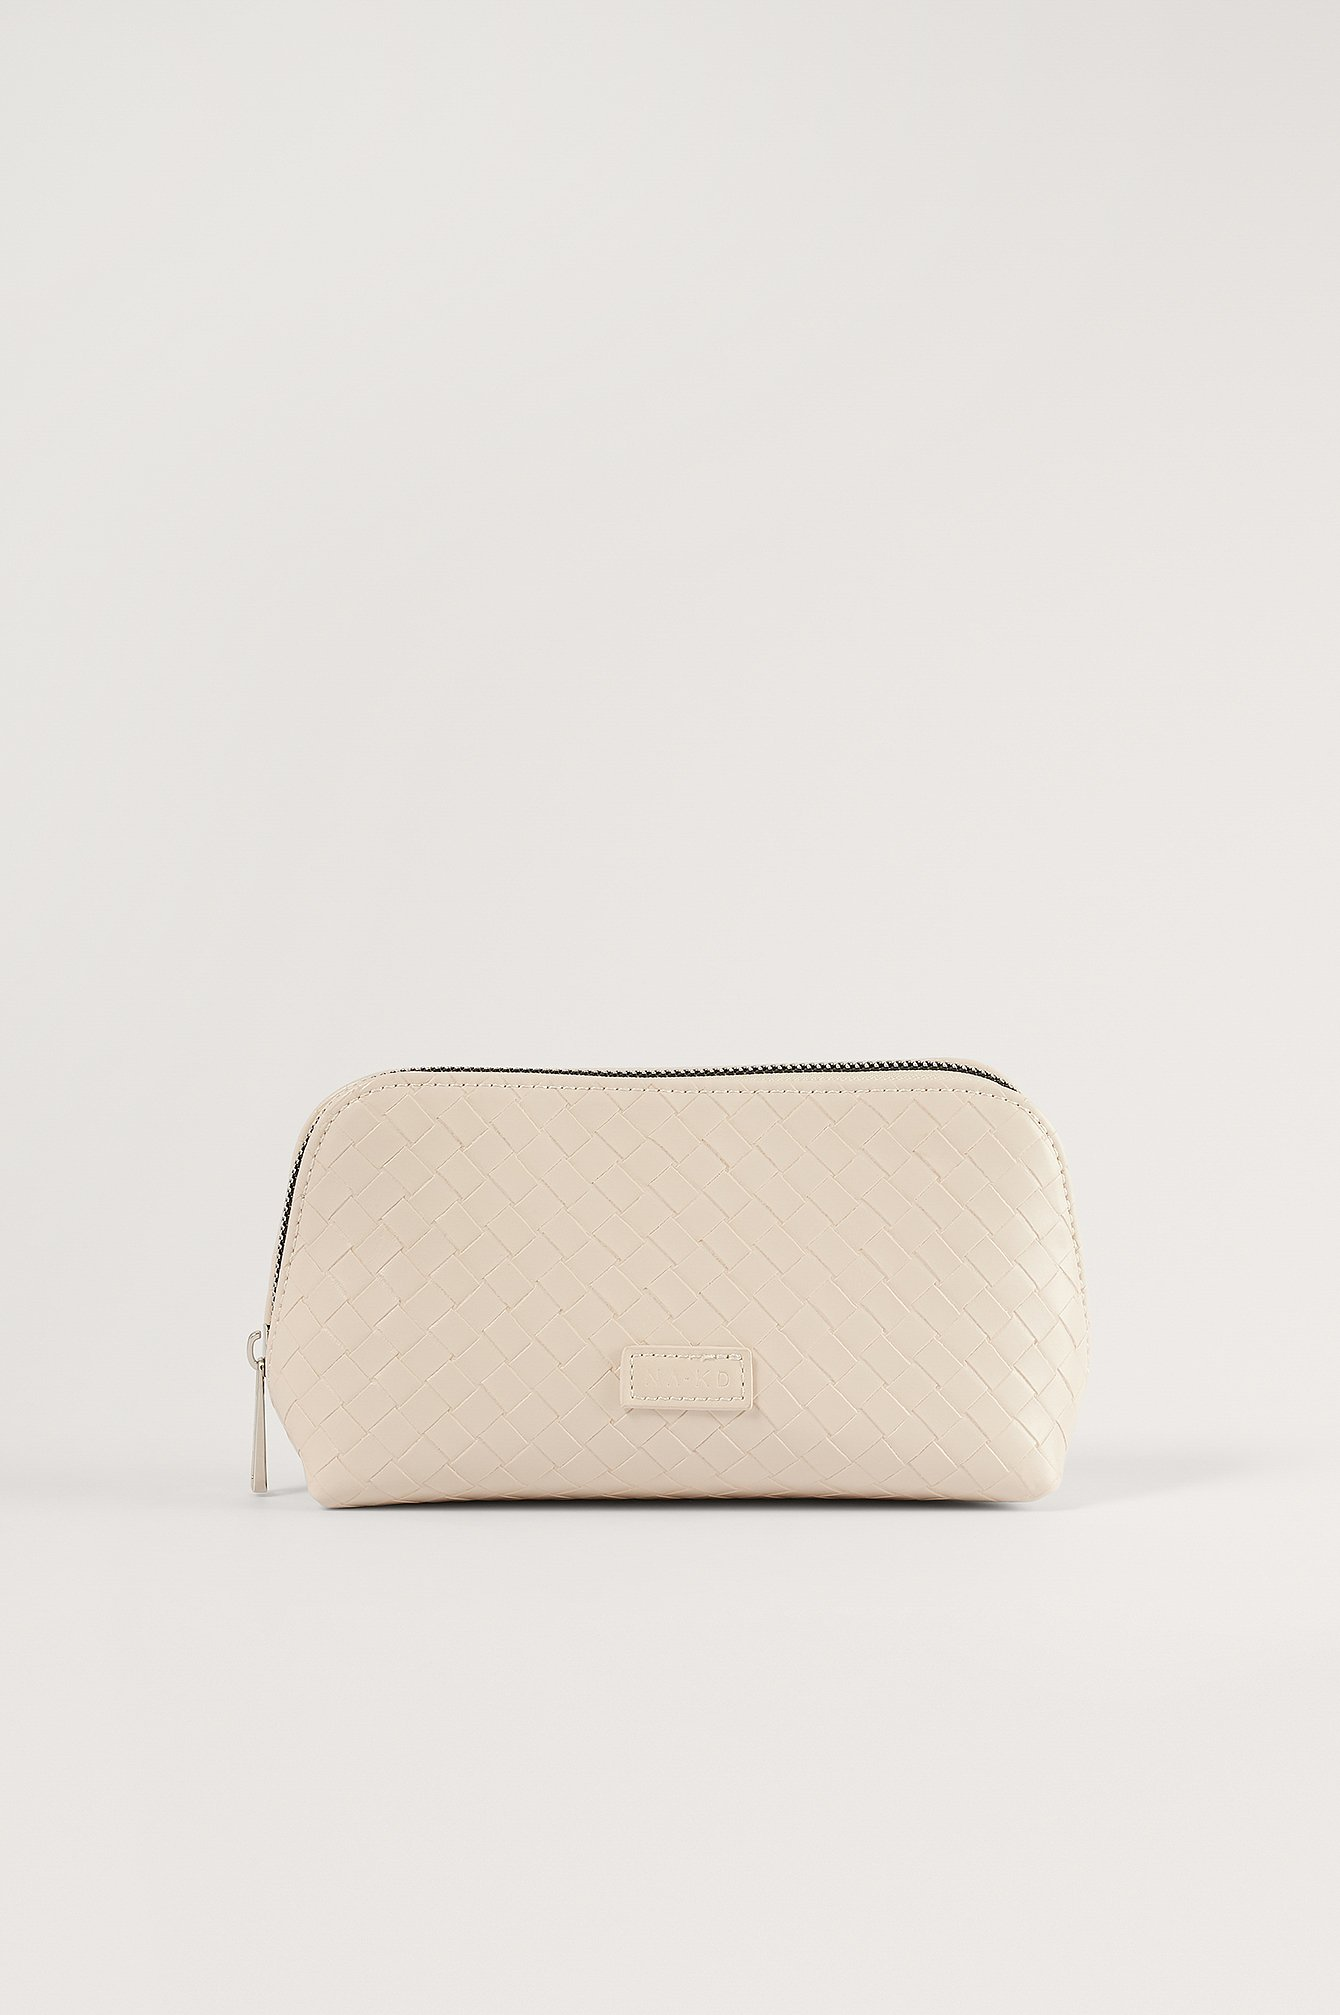 NA-KD Accessories Woven Look Make Up Bag - Beige